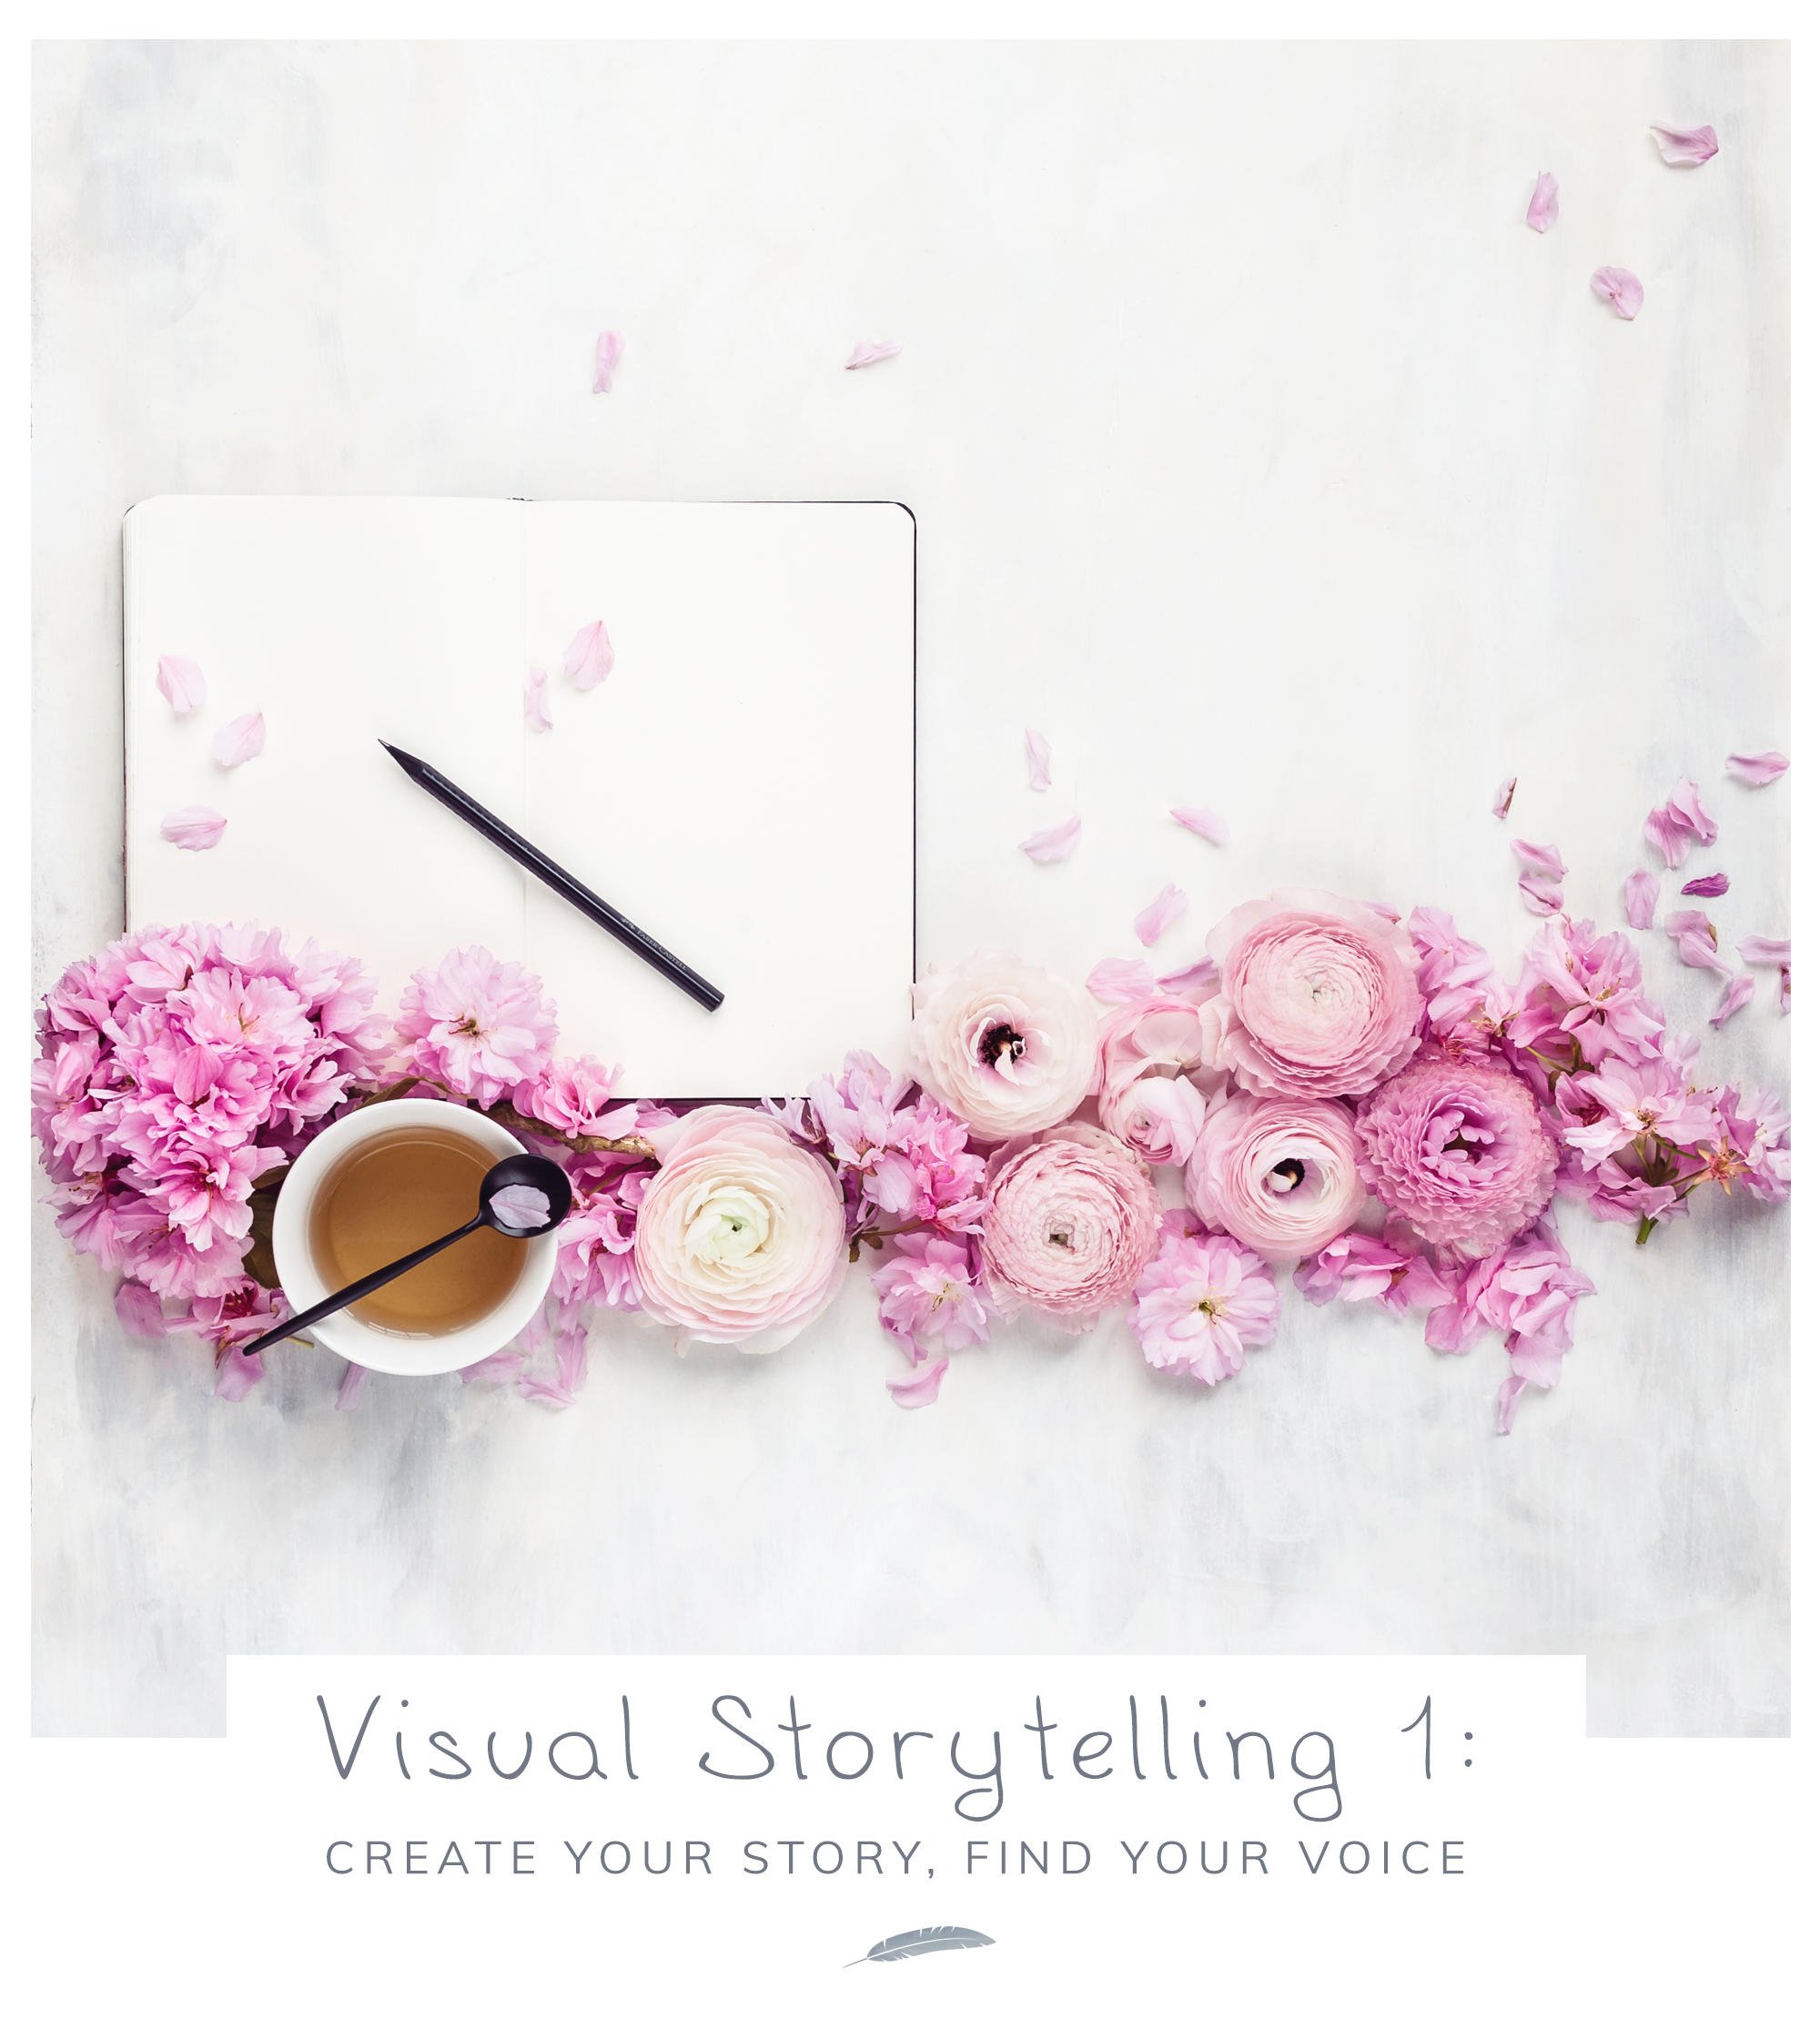 Visual Storytelling 1: create your story, find your voice